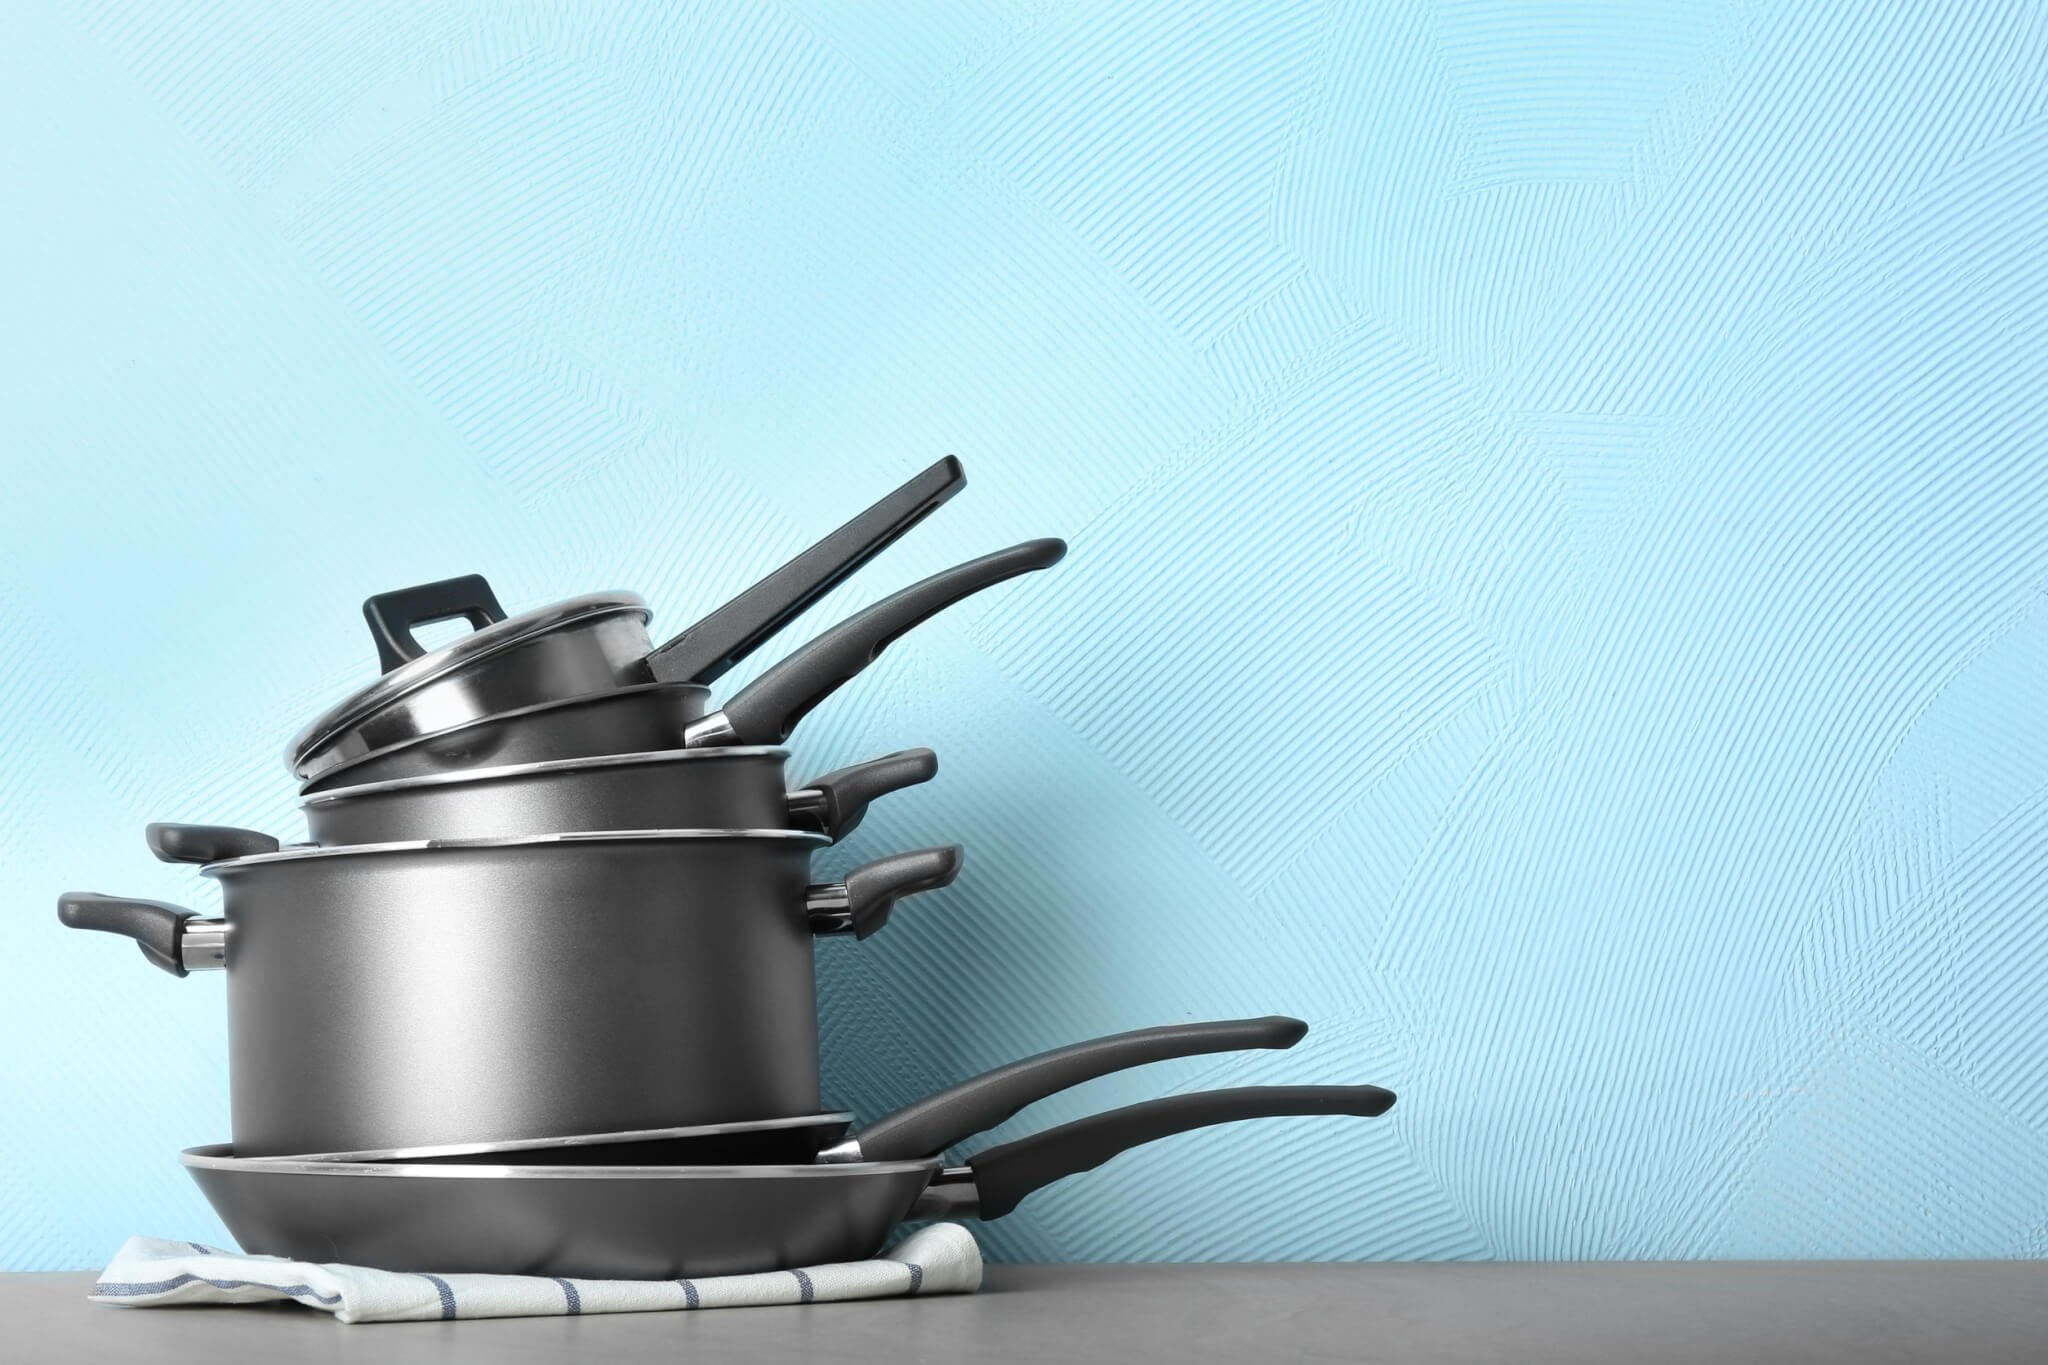 Planning to Buy Non Toxic Cookware? First Read This!